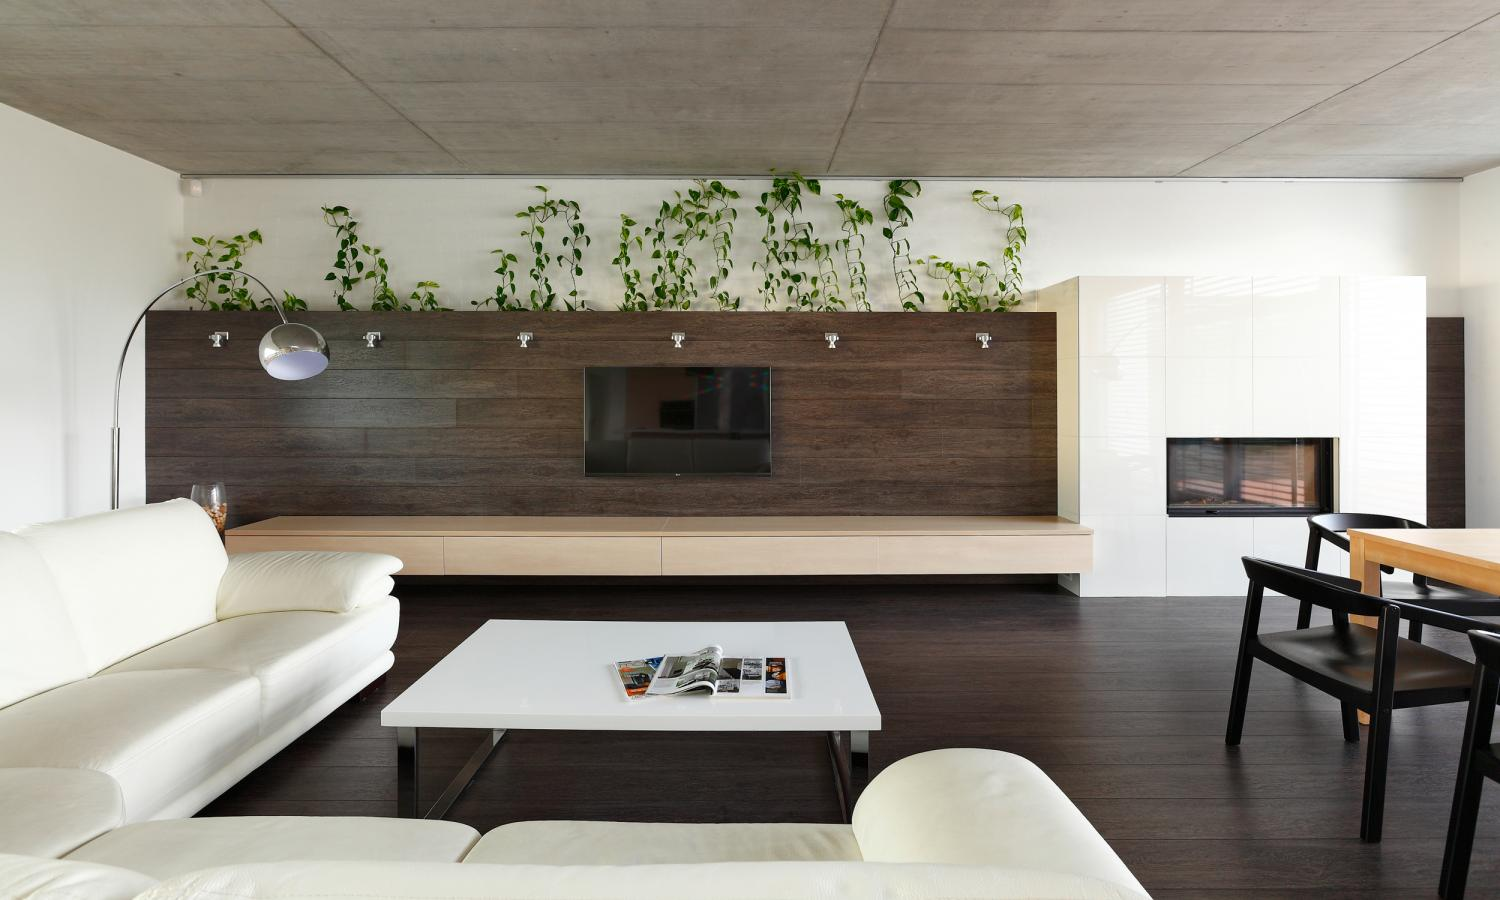 Indoor plants inspiration for your apartment decorating idea roohome designs plans - Decorate apartment ...